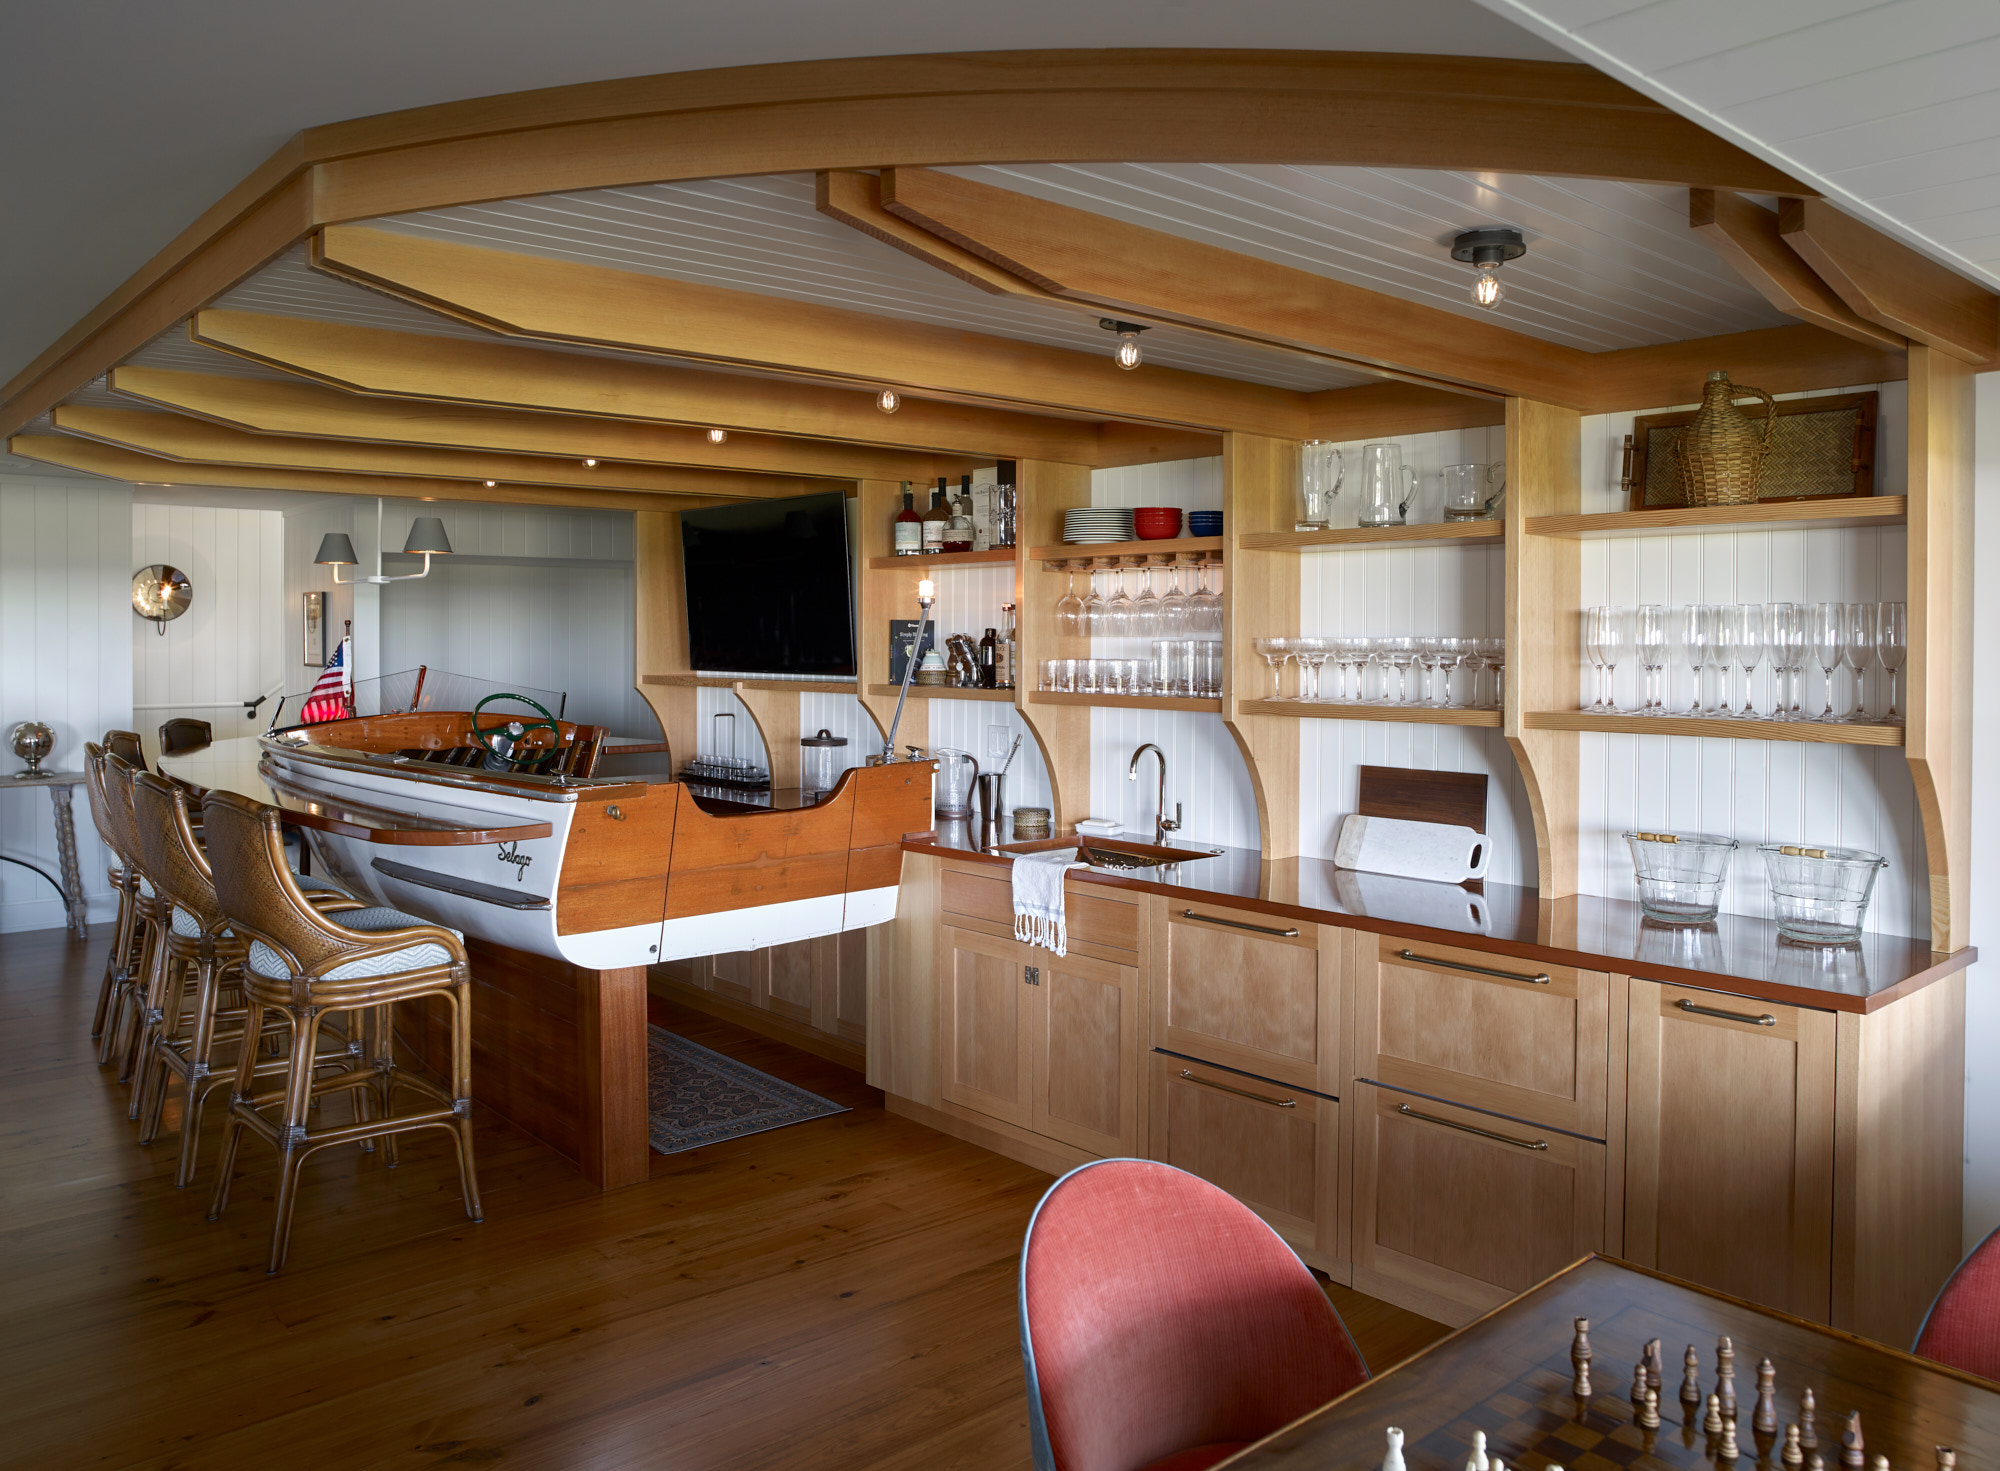 Nautical themed bar area with game table